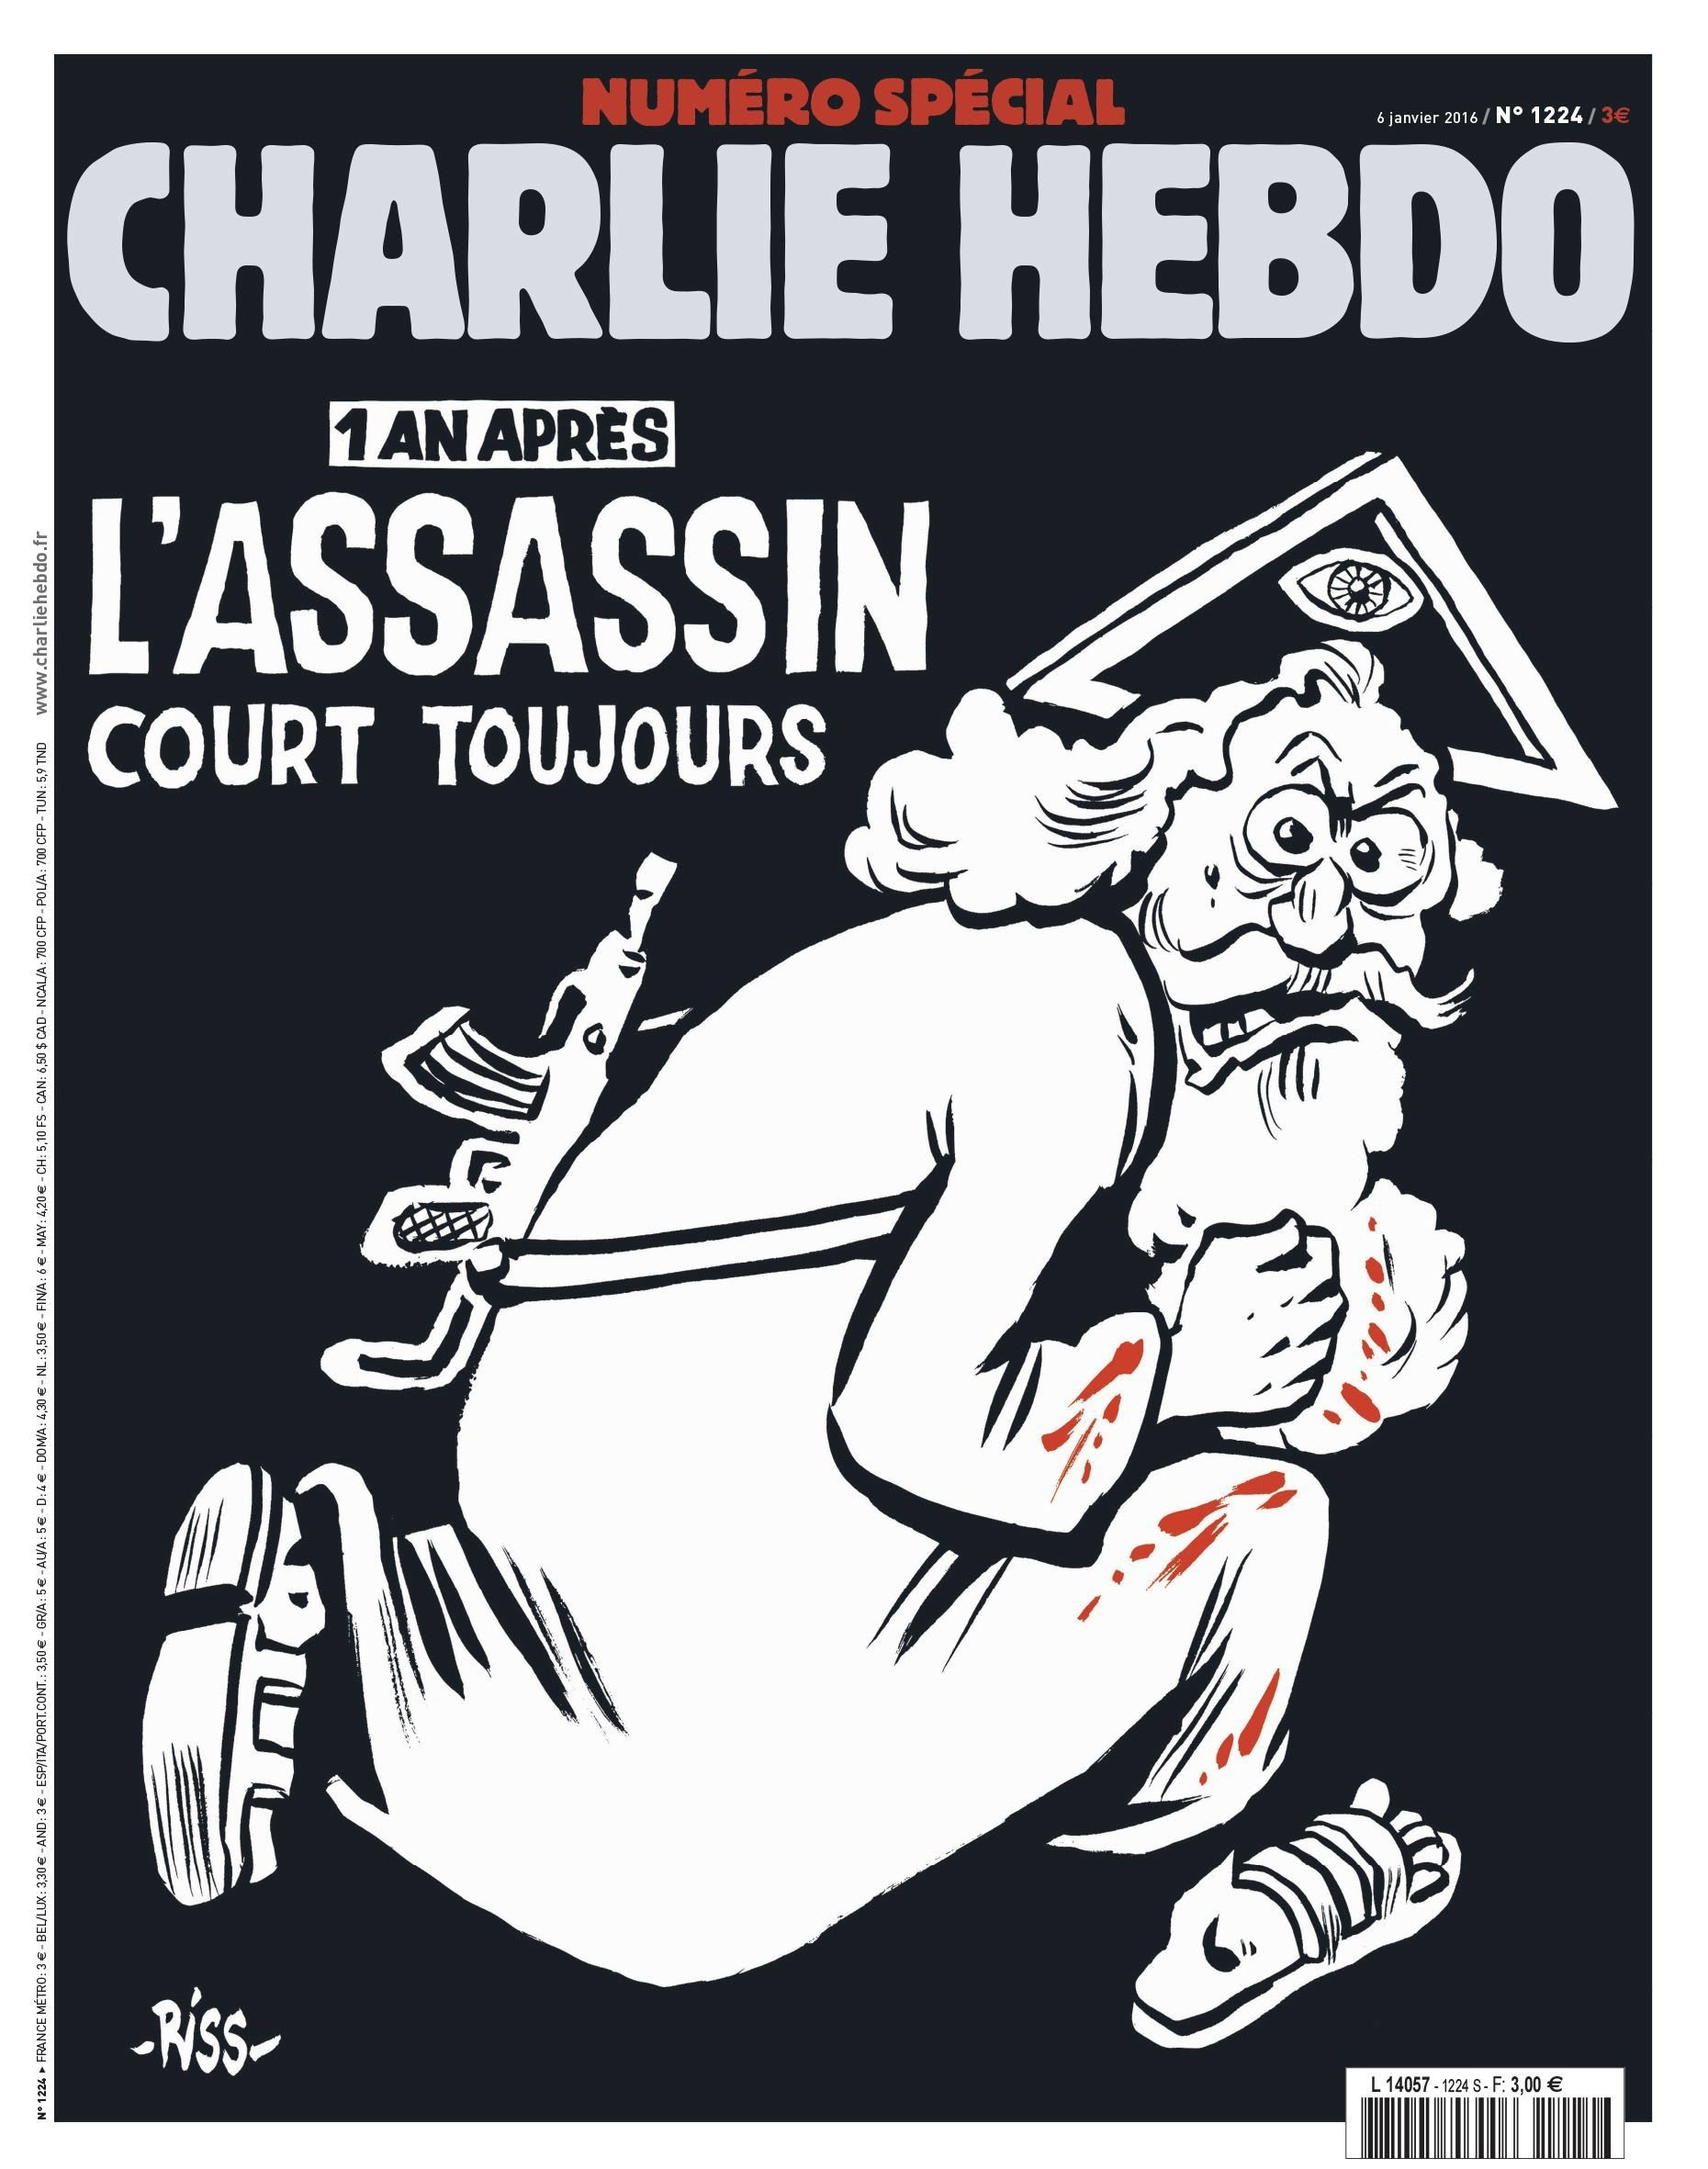 Charlie Hebdo Lives On But In Darkness Bbc News